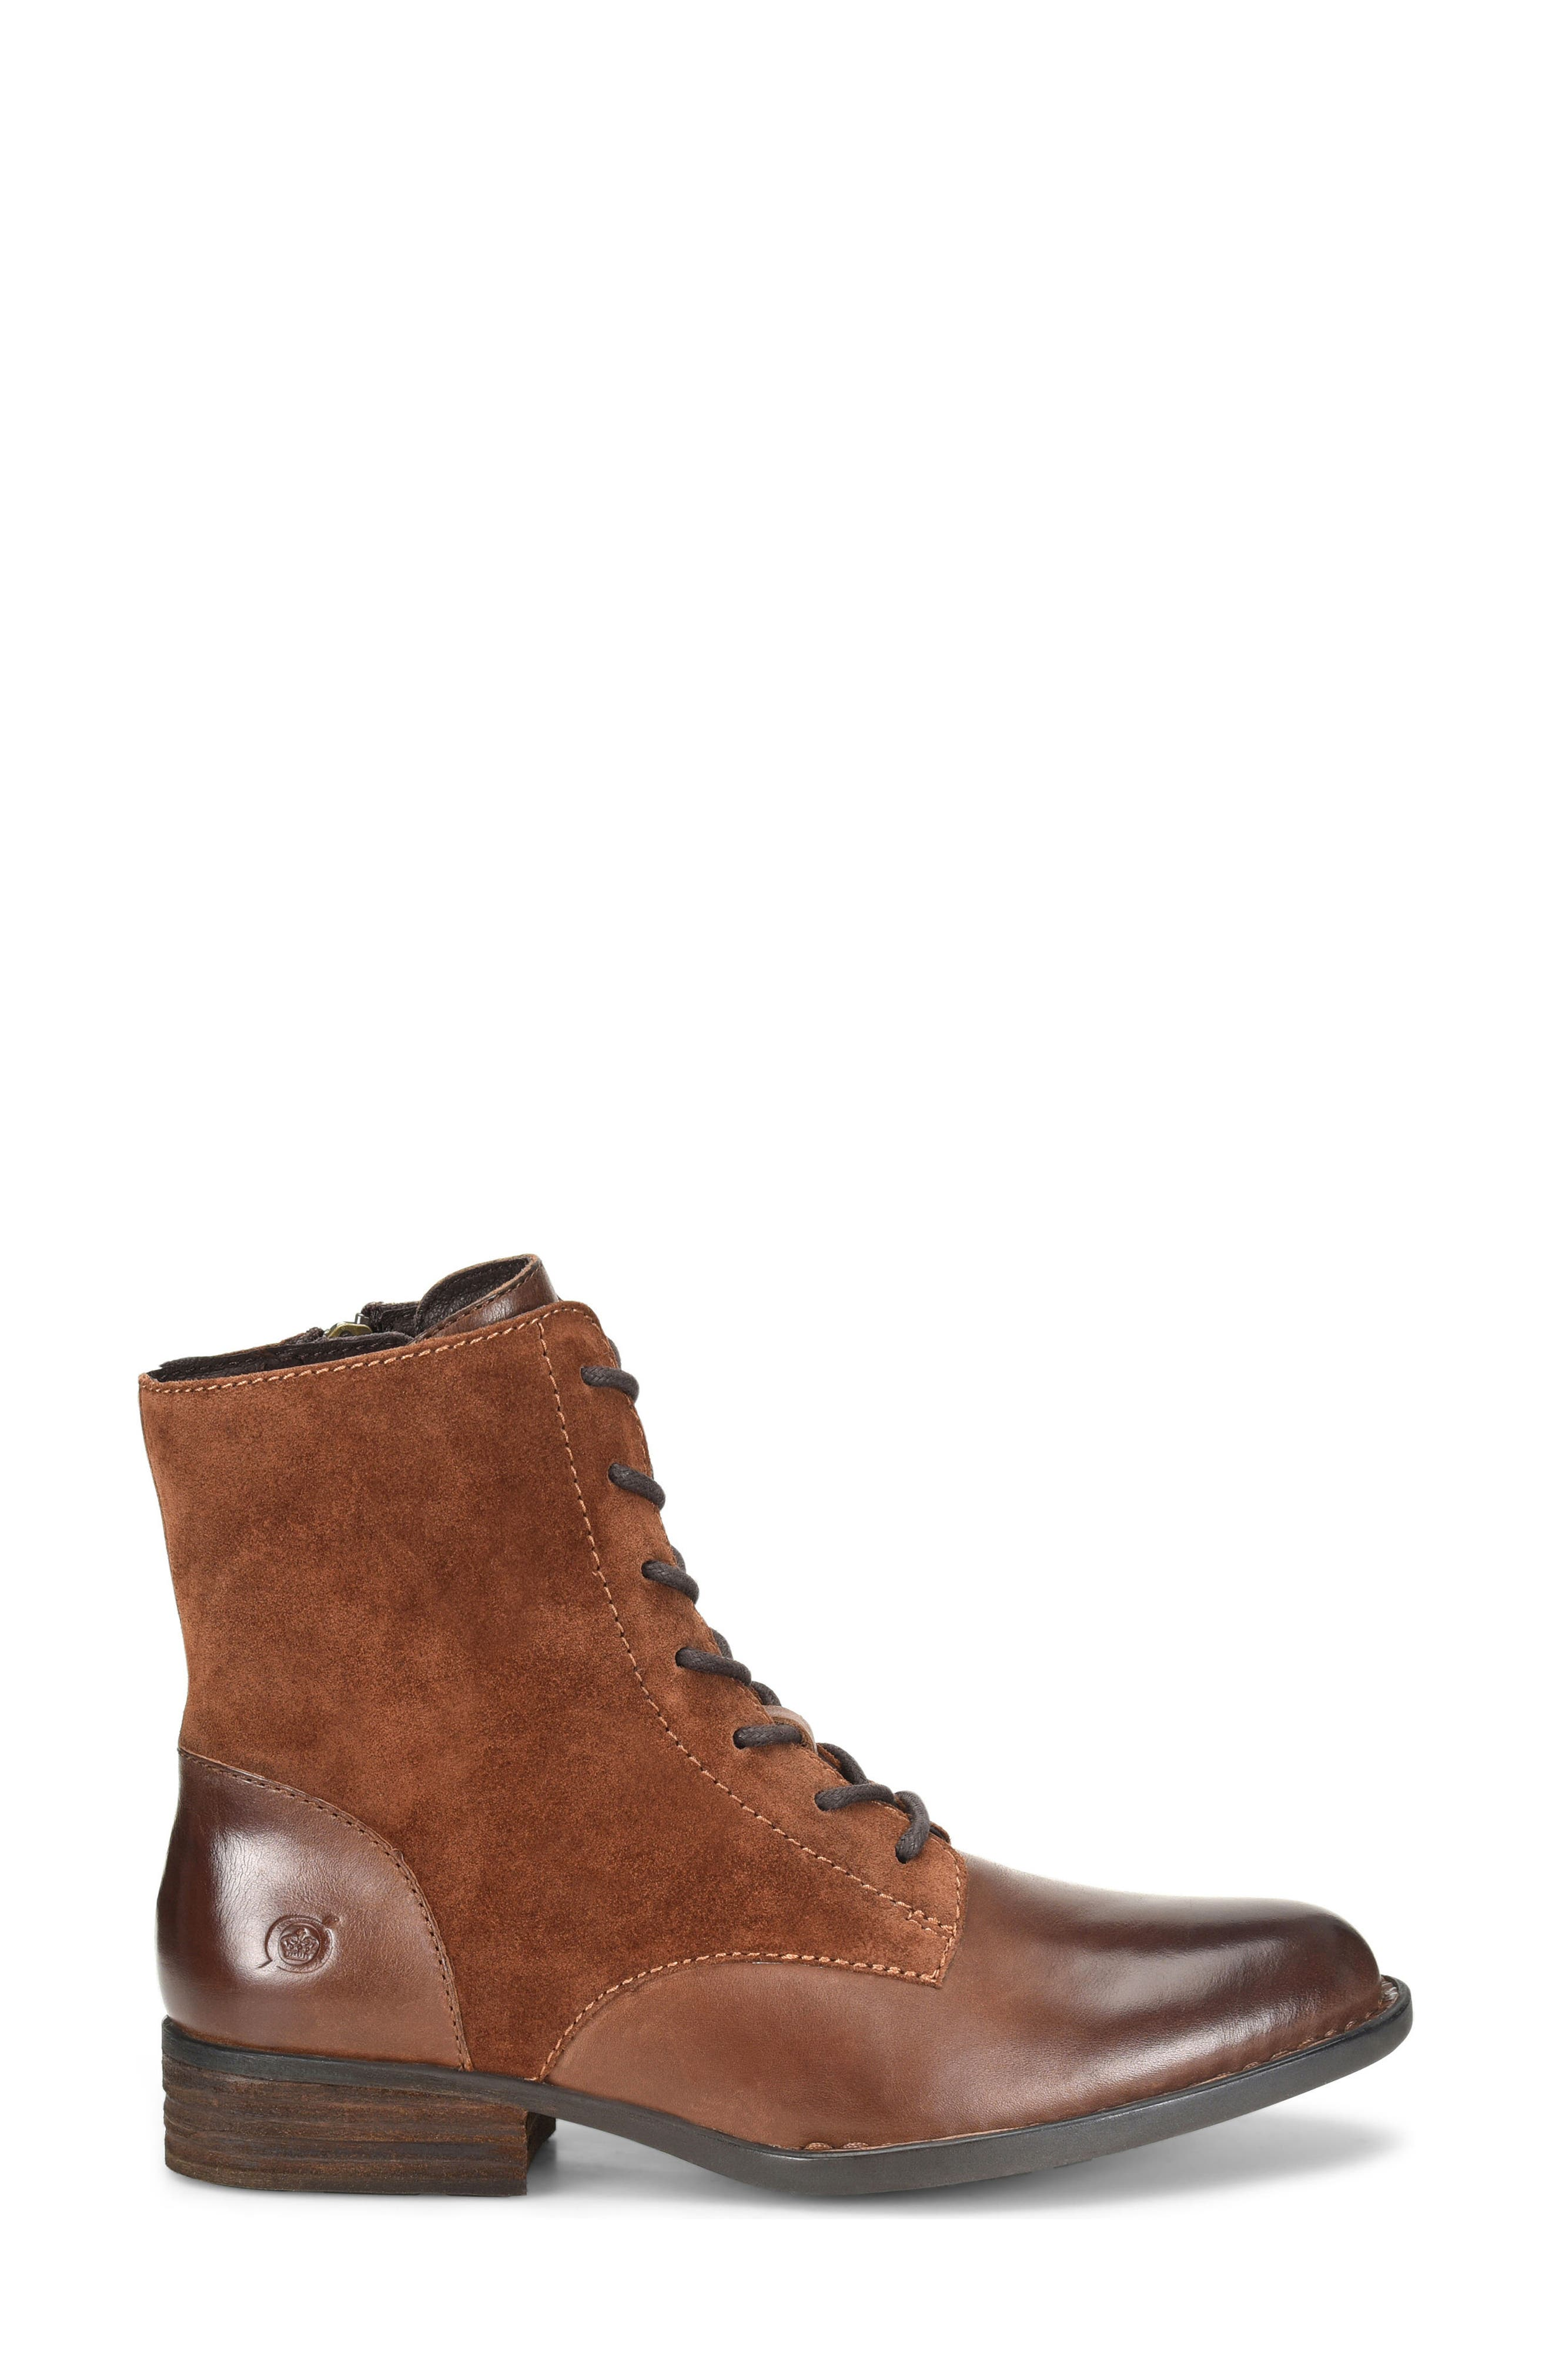 Clements Lace-Up Boot,                             Alternate thumbnail 3, color,                             Brown/ Rust Combo